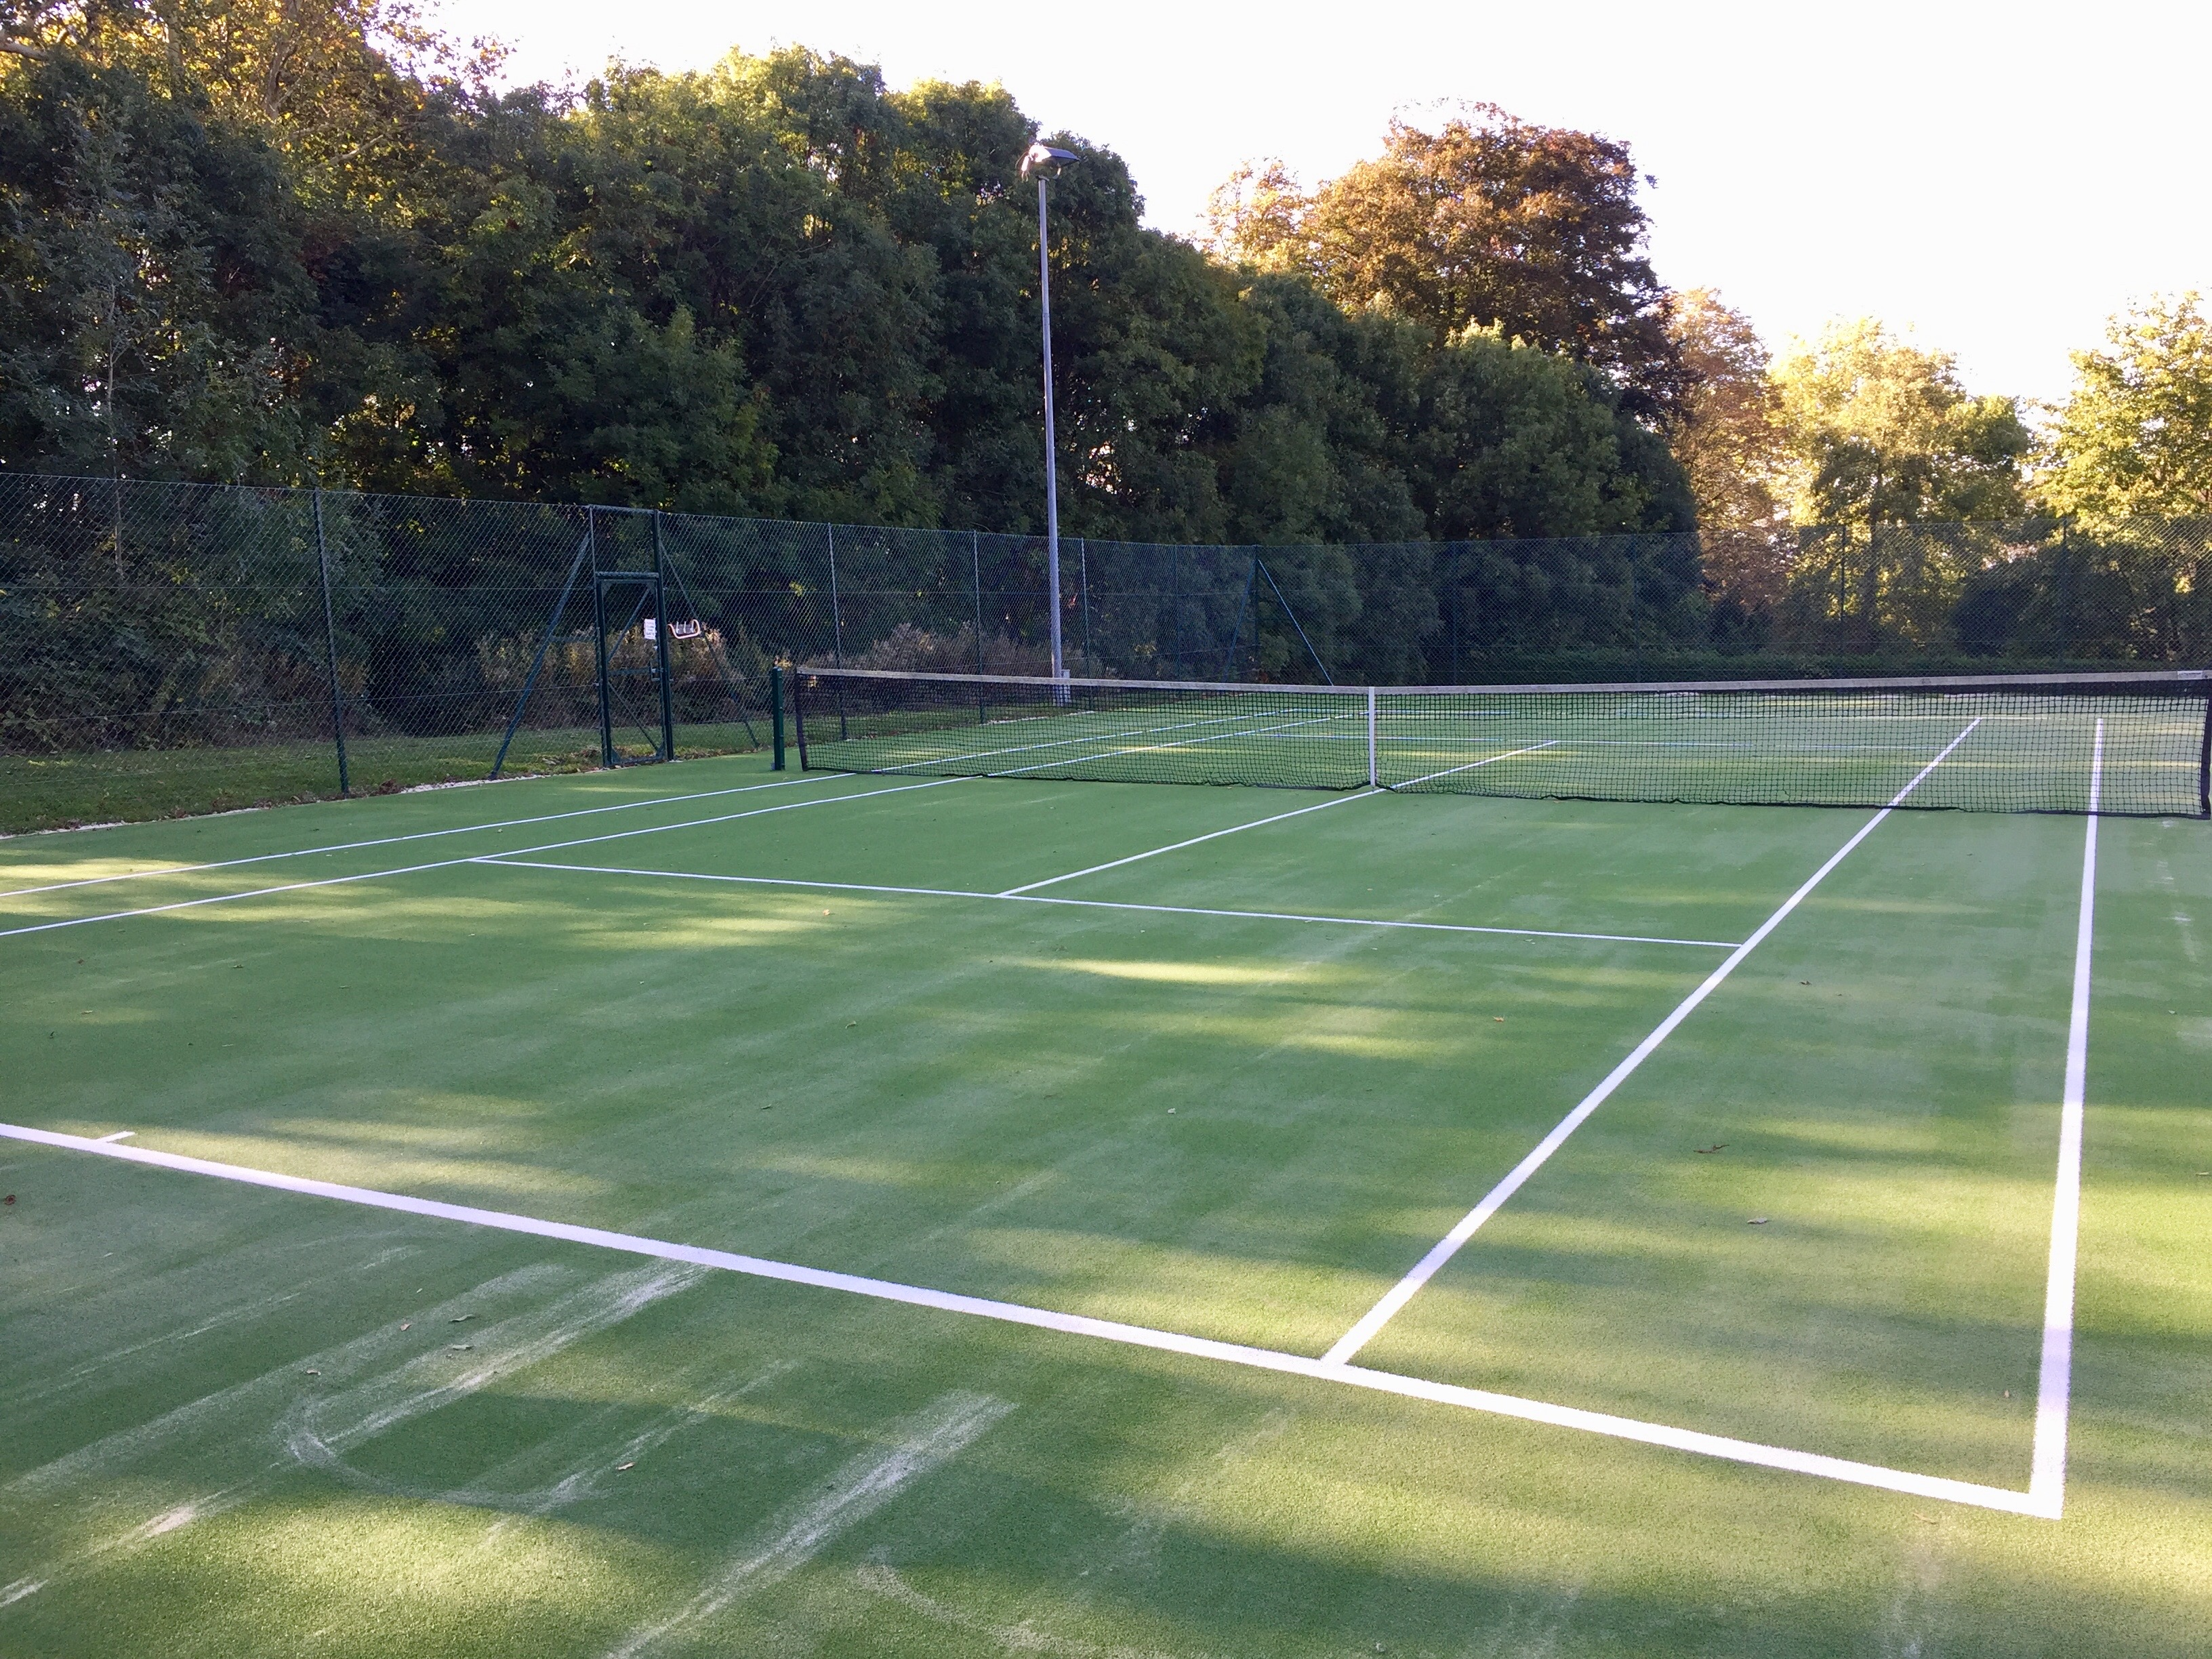 A new sand filled artificial grass surface for a leading tennis club